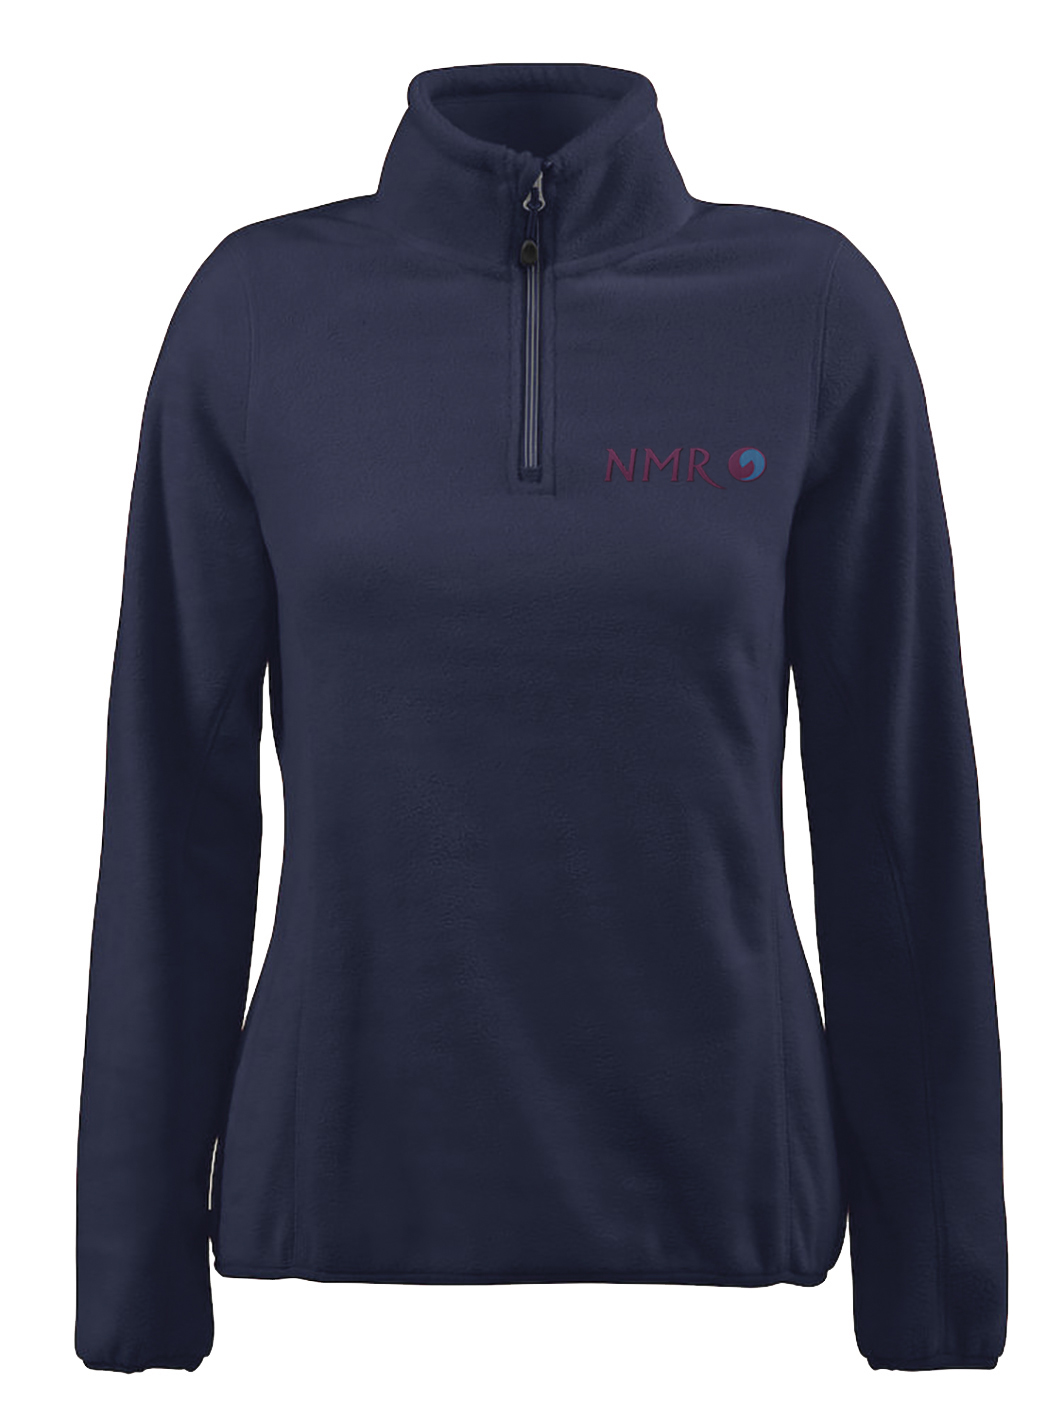 Frontflip Ladies' Half Zip Fleece Sweater